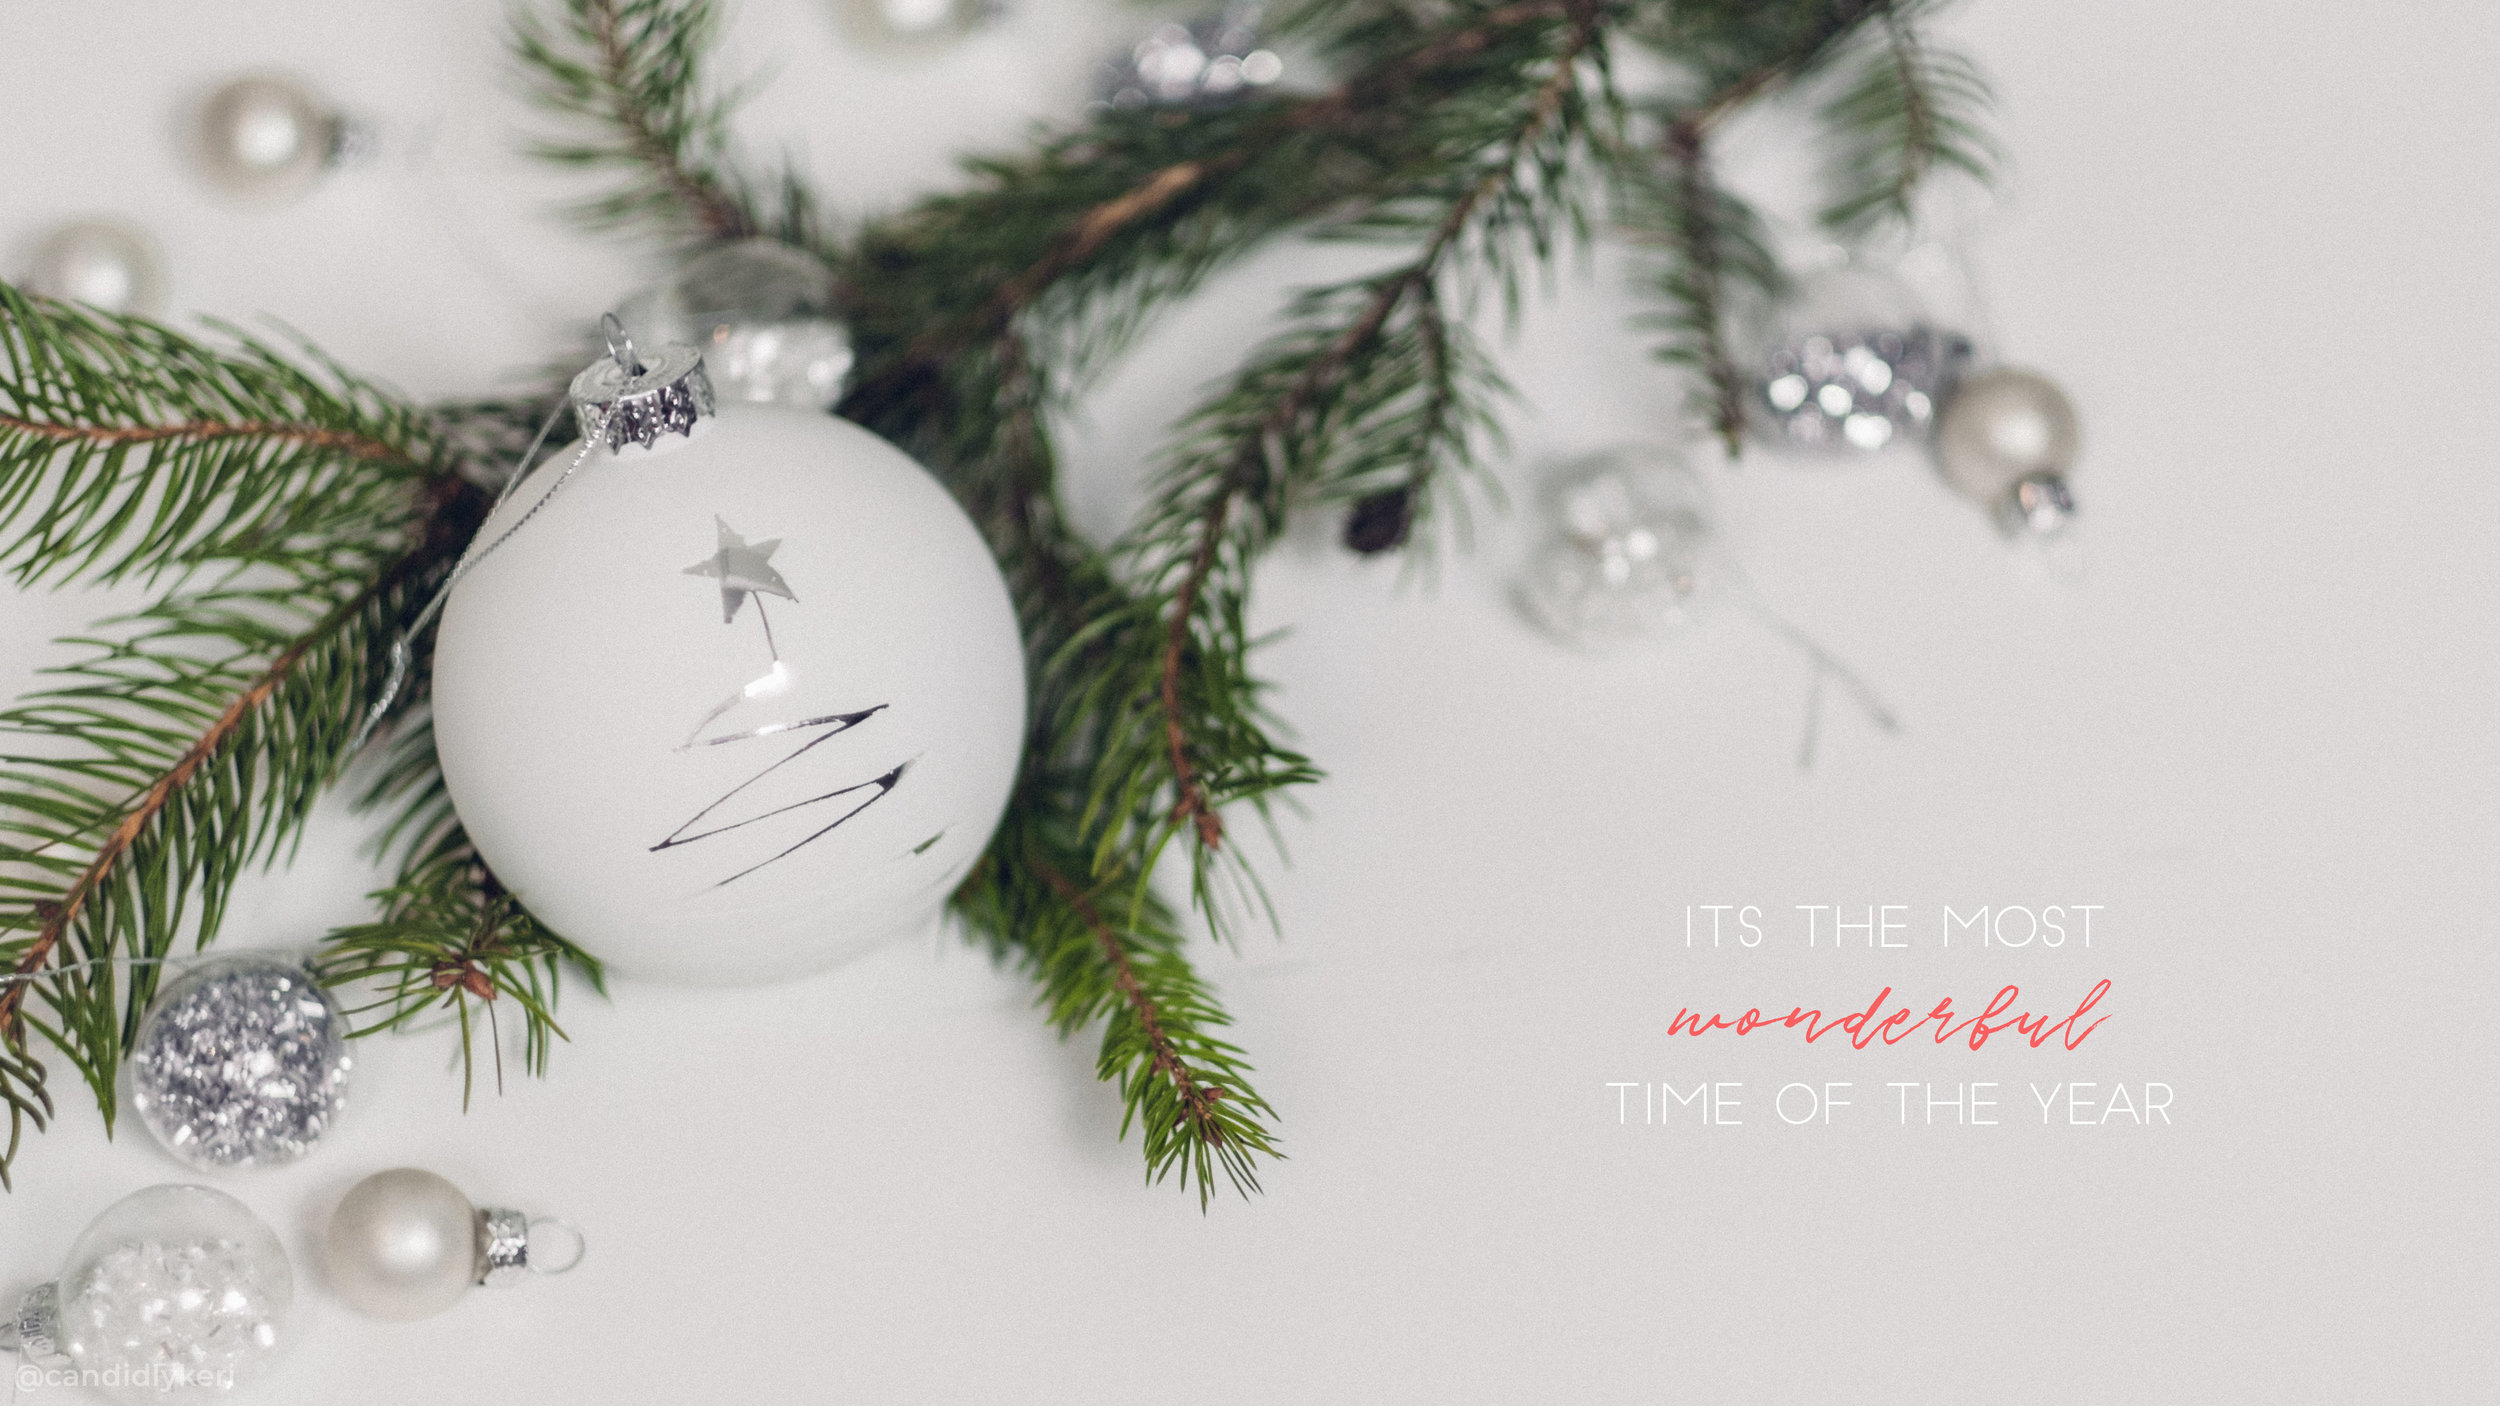 Christmas Holiday Wallpaper Ornament Wonderful Time of the Year